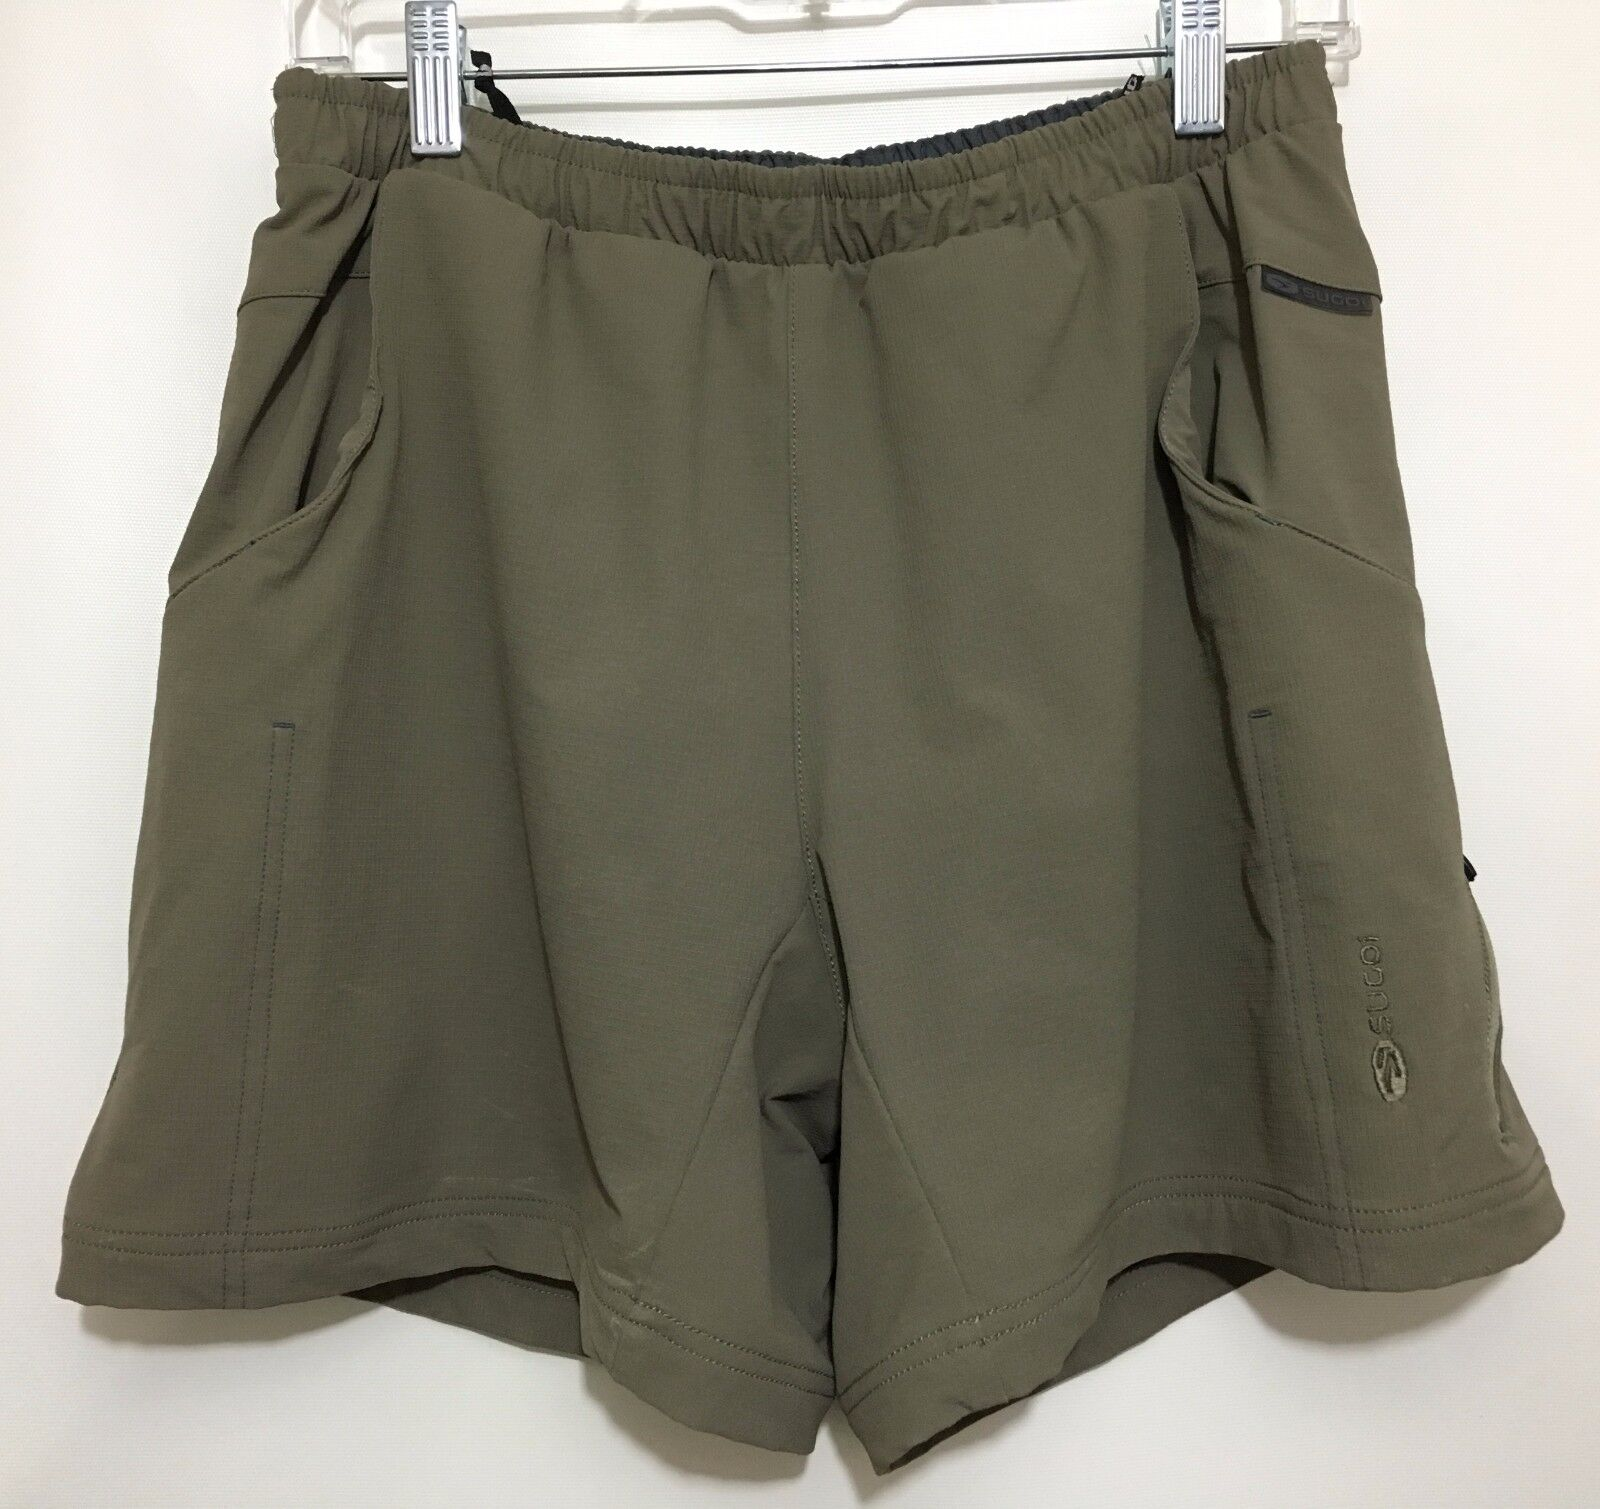 Sugoi Womens M Olive Green Padded Bike Shorts Cycling